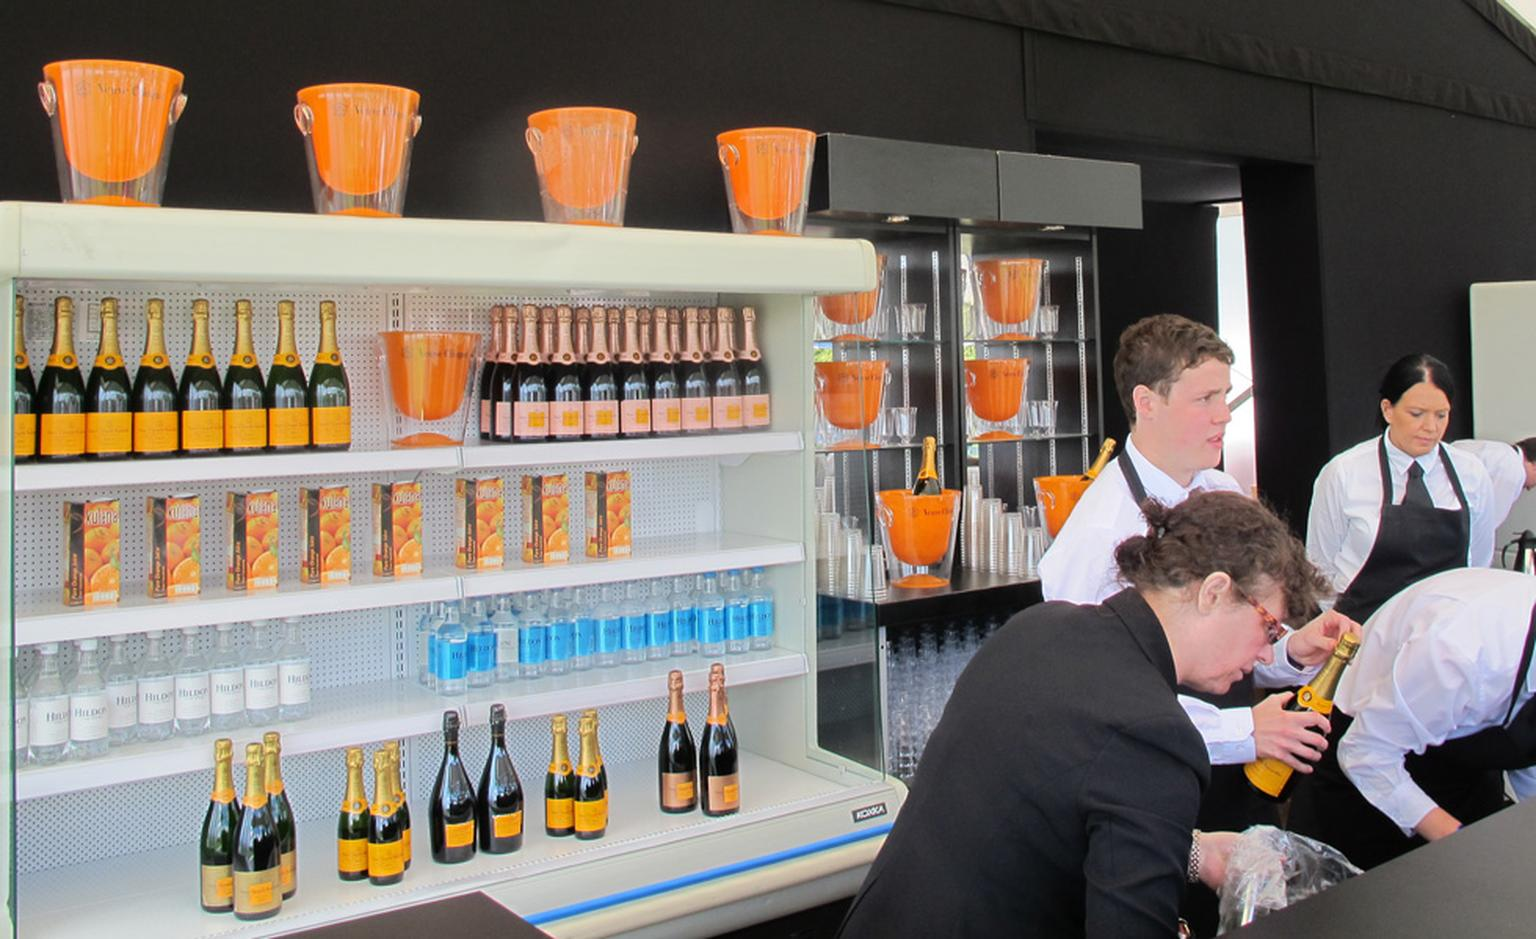 The Veuve Clicquot refreshment stand.